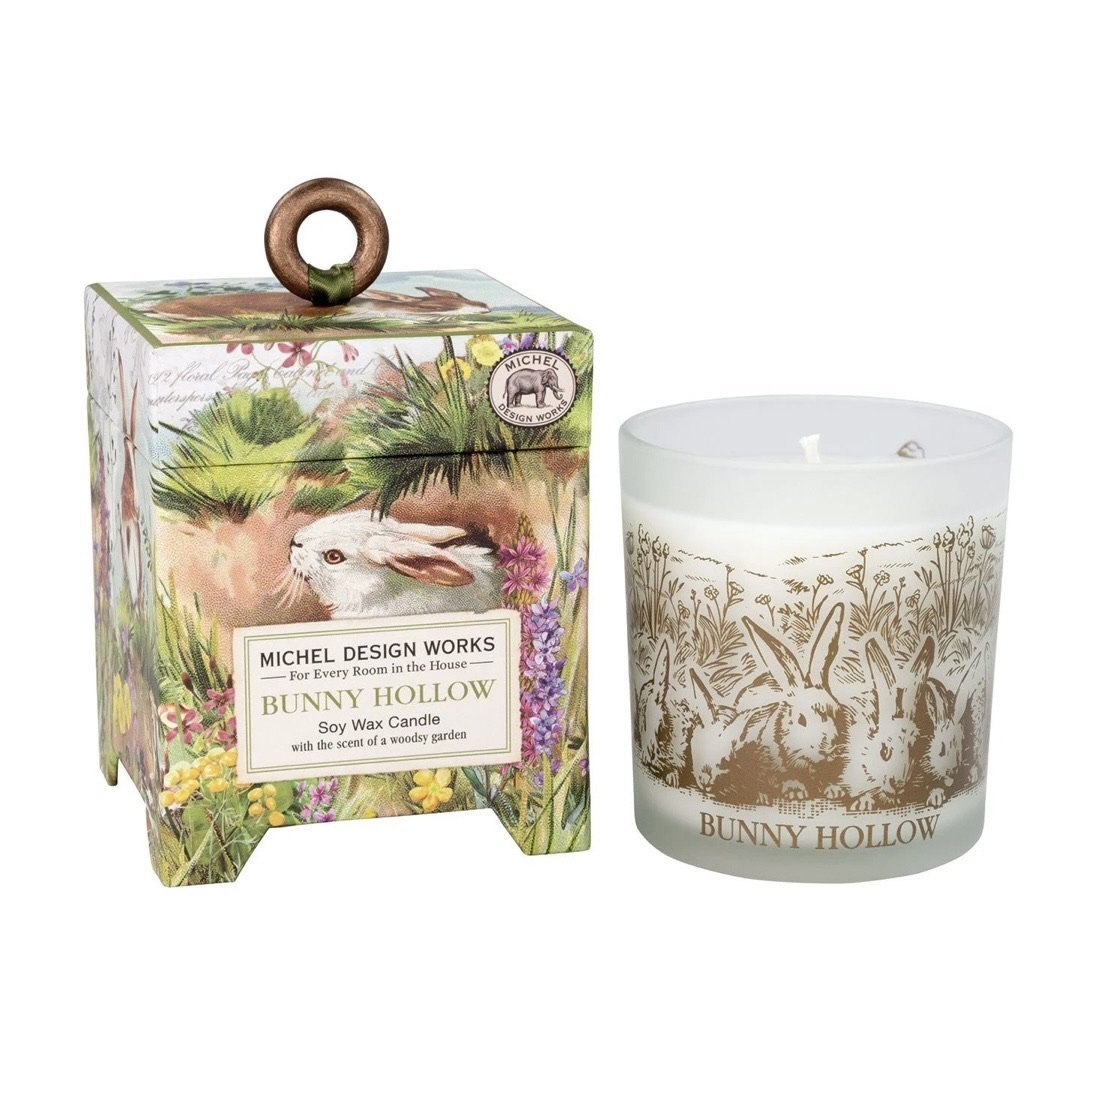 Bunny Hollow Candle